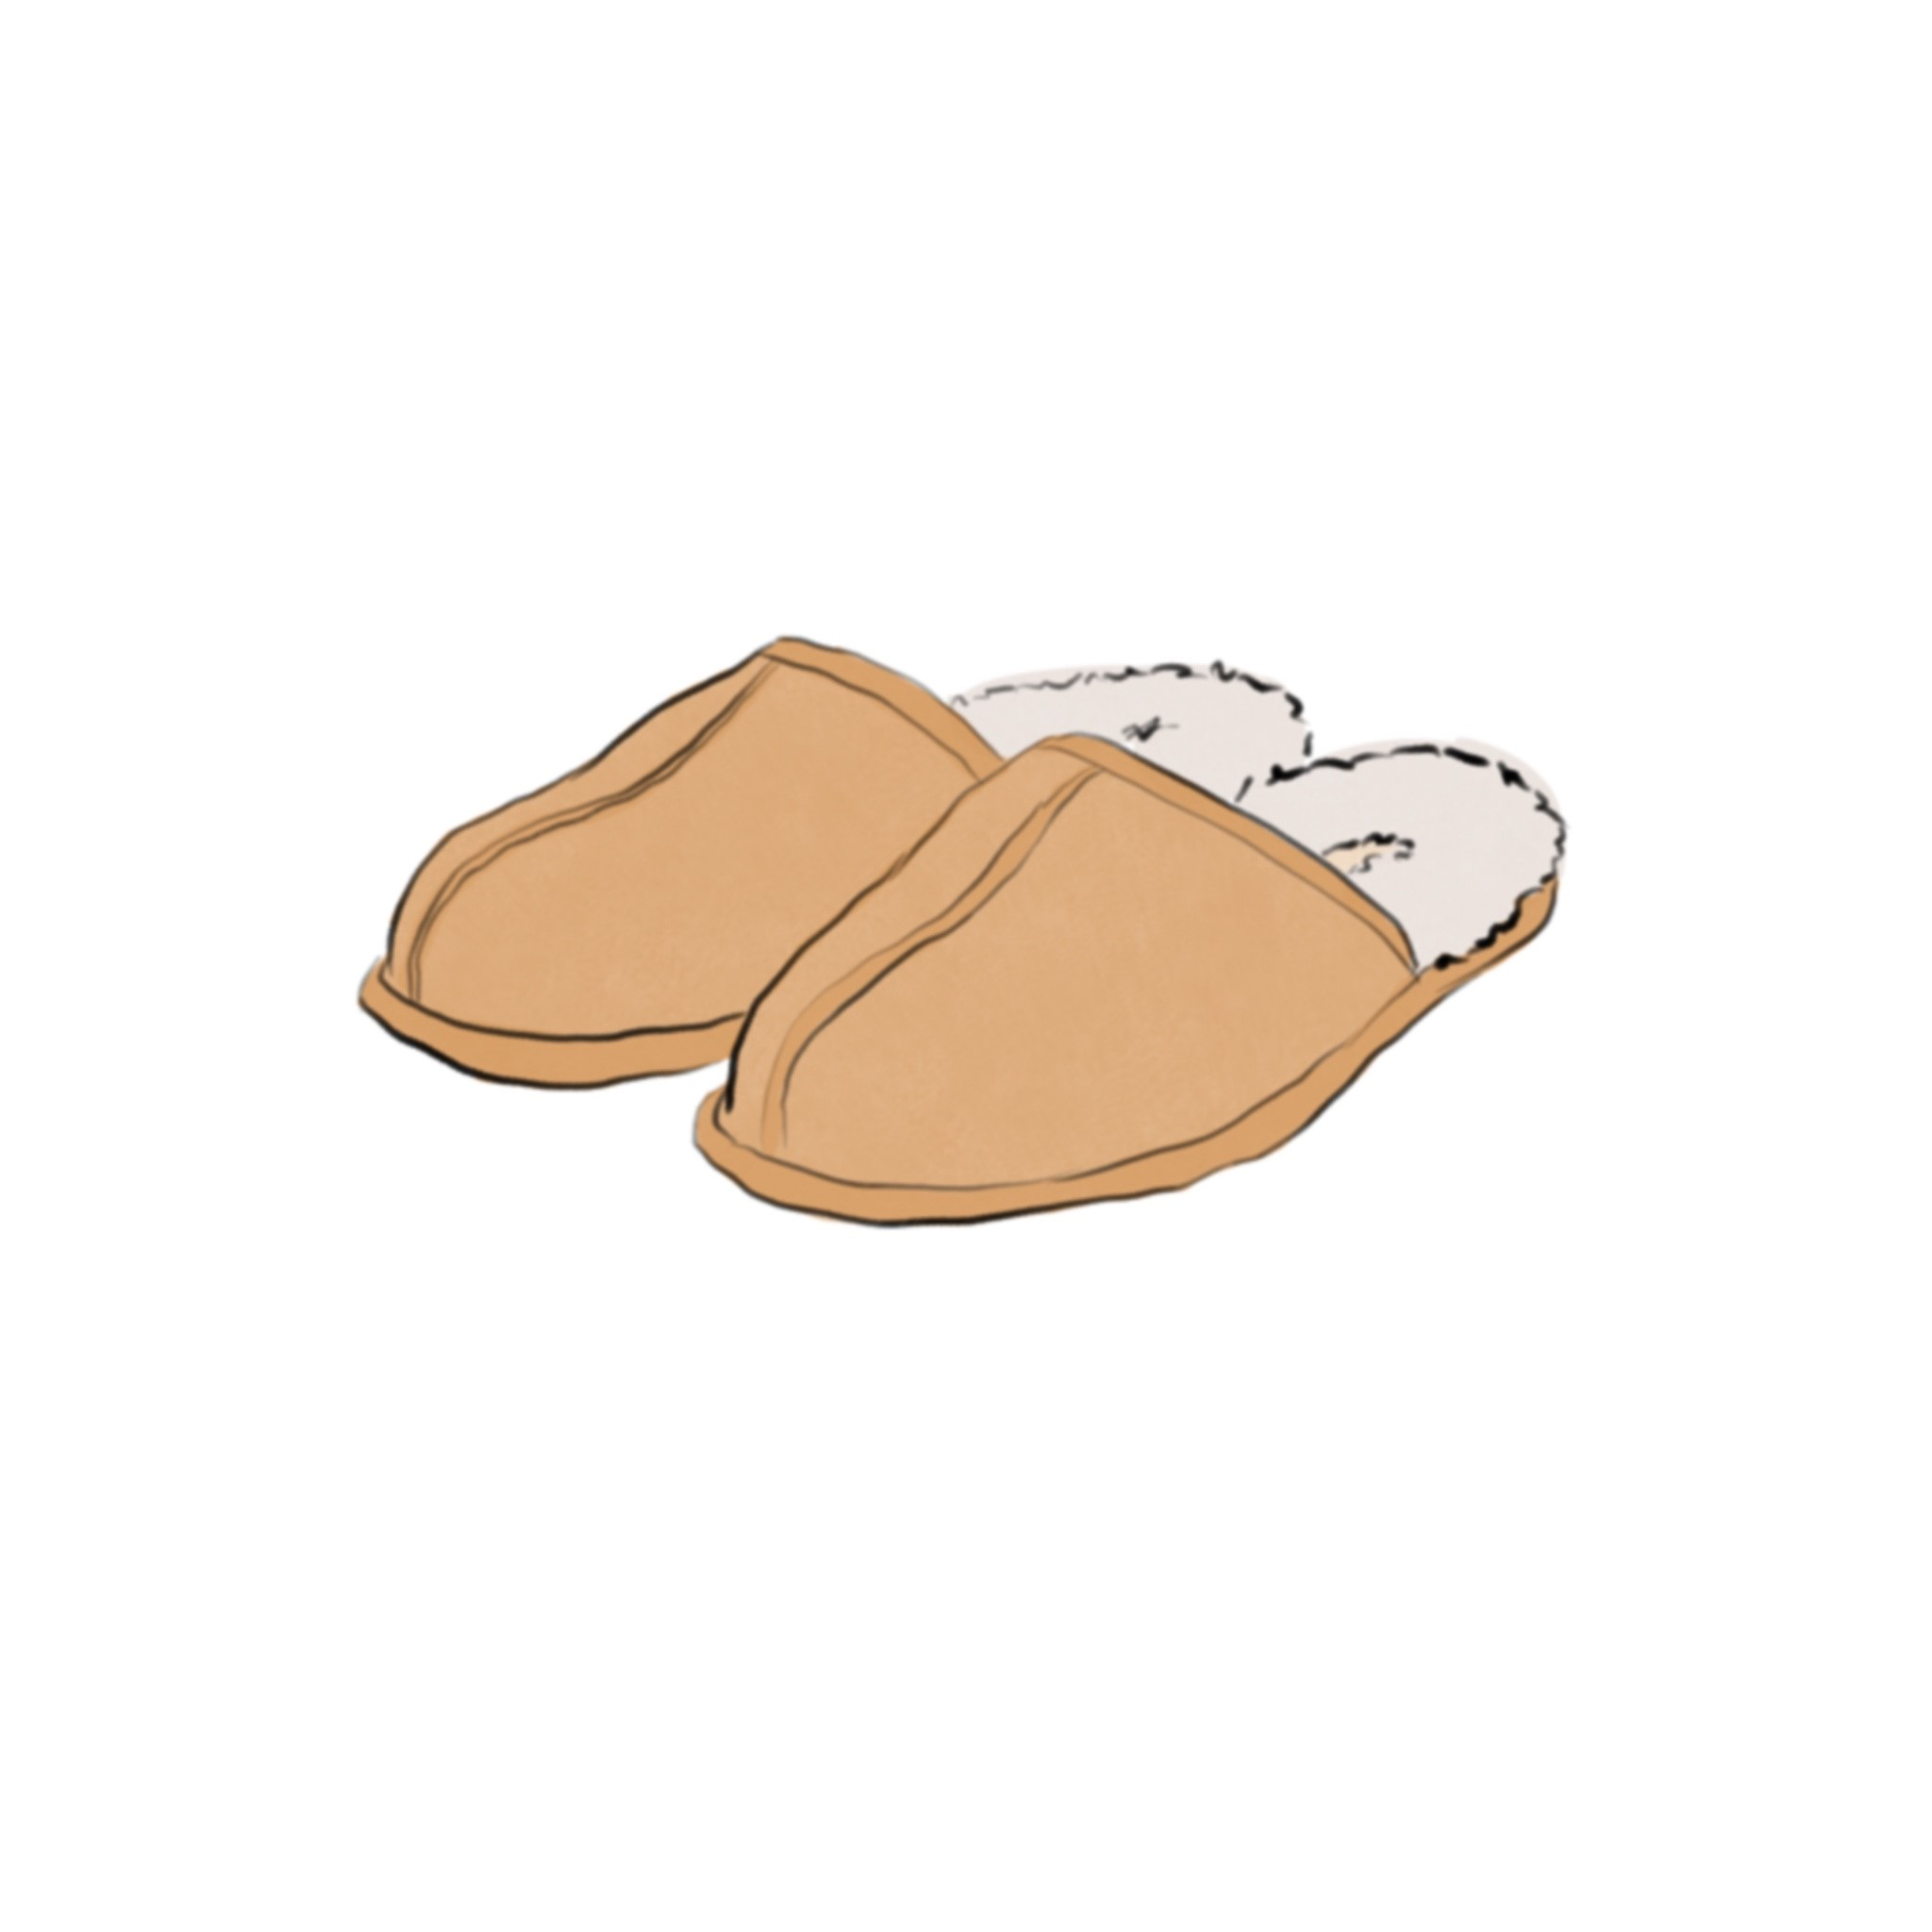 Illustration of a pair of tan slippers with fluffy white lining and open heels.